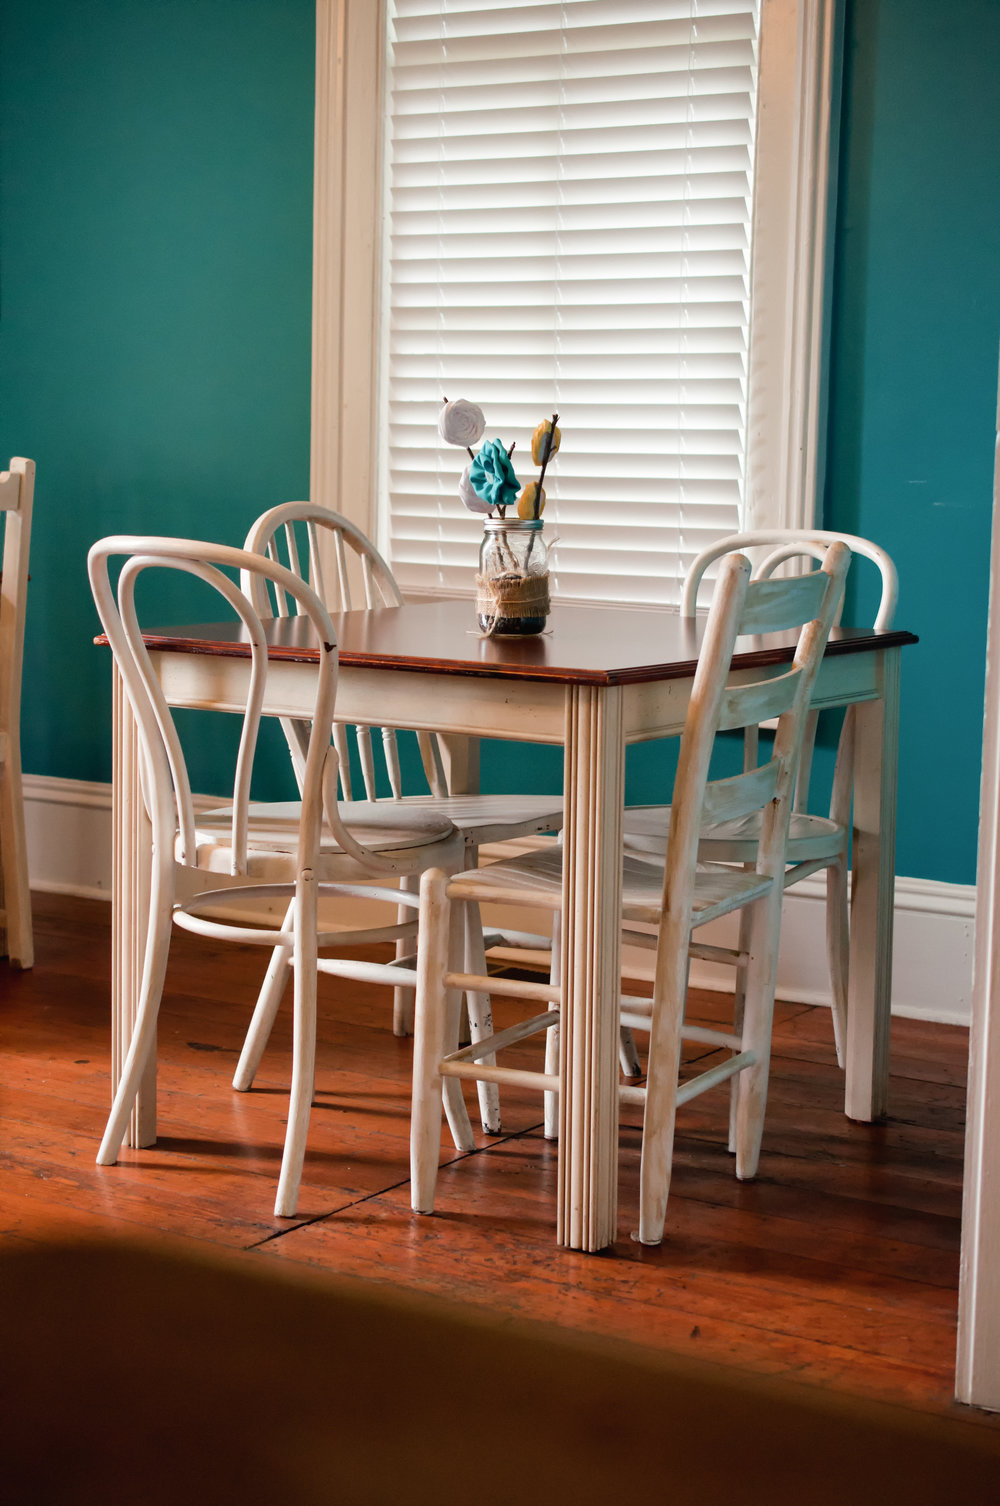 """Lauren C. said… - """"Went to Back on the Racks this weekend looking for some home furnishings and discovered a beautiful kitchen table with a set of 4 chairs marked very reasonably.Colleen was very helpful and friendly. The delivery guys were both courteous, they were great with getting everything setup where we wanted it and making sure we were happy with it. All of the employees that assisted us were polite and helpful with looking the table over and arranging delivery that arrived the very next day. In addition, they also took away our high-top table that is now on consignment.Overall, extremely pleased with the customer service and care from the staff at this location. We will definitely be stopping in again to see what new items are for sale."""""""